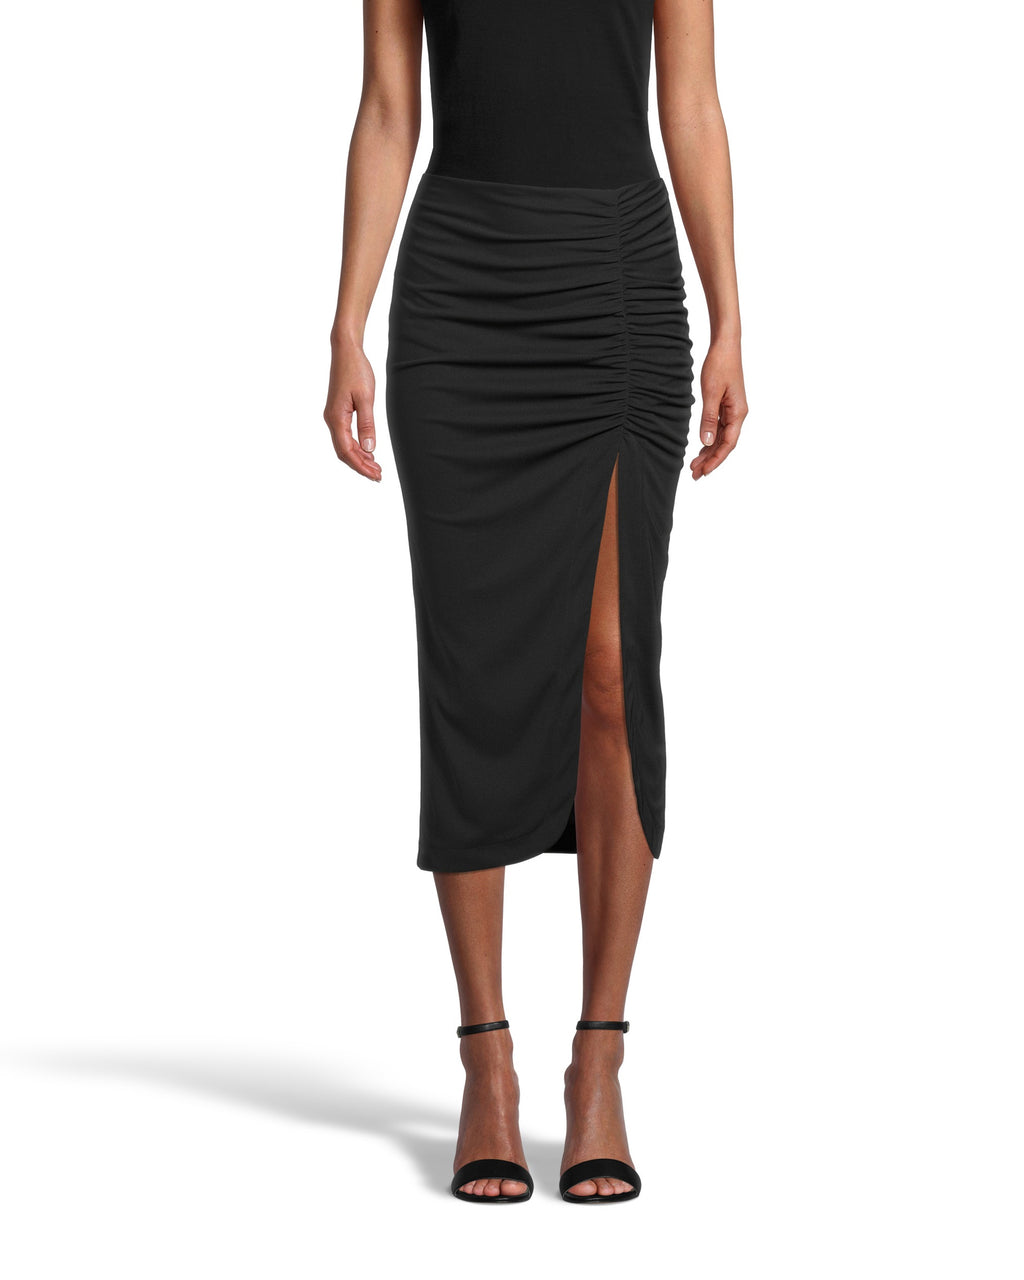 CS18481 - RUCHED MIDI SKIRT - bottoms - skirts - This on trend midi skirt effortlessly transitions season to season. Crafted from heavy jersey material, this ultra flattering piece hugs your curves and features ruching and a side slit. Add 1 line break Stylist Tip: Pair with a cashmere sweater in the winter and a lightweight cami in the spring.